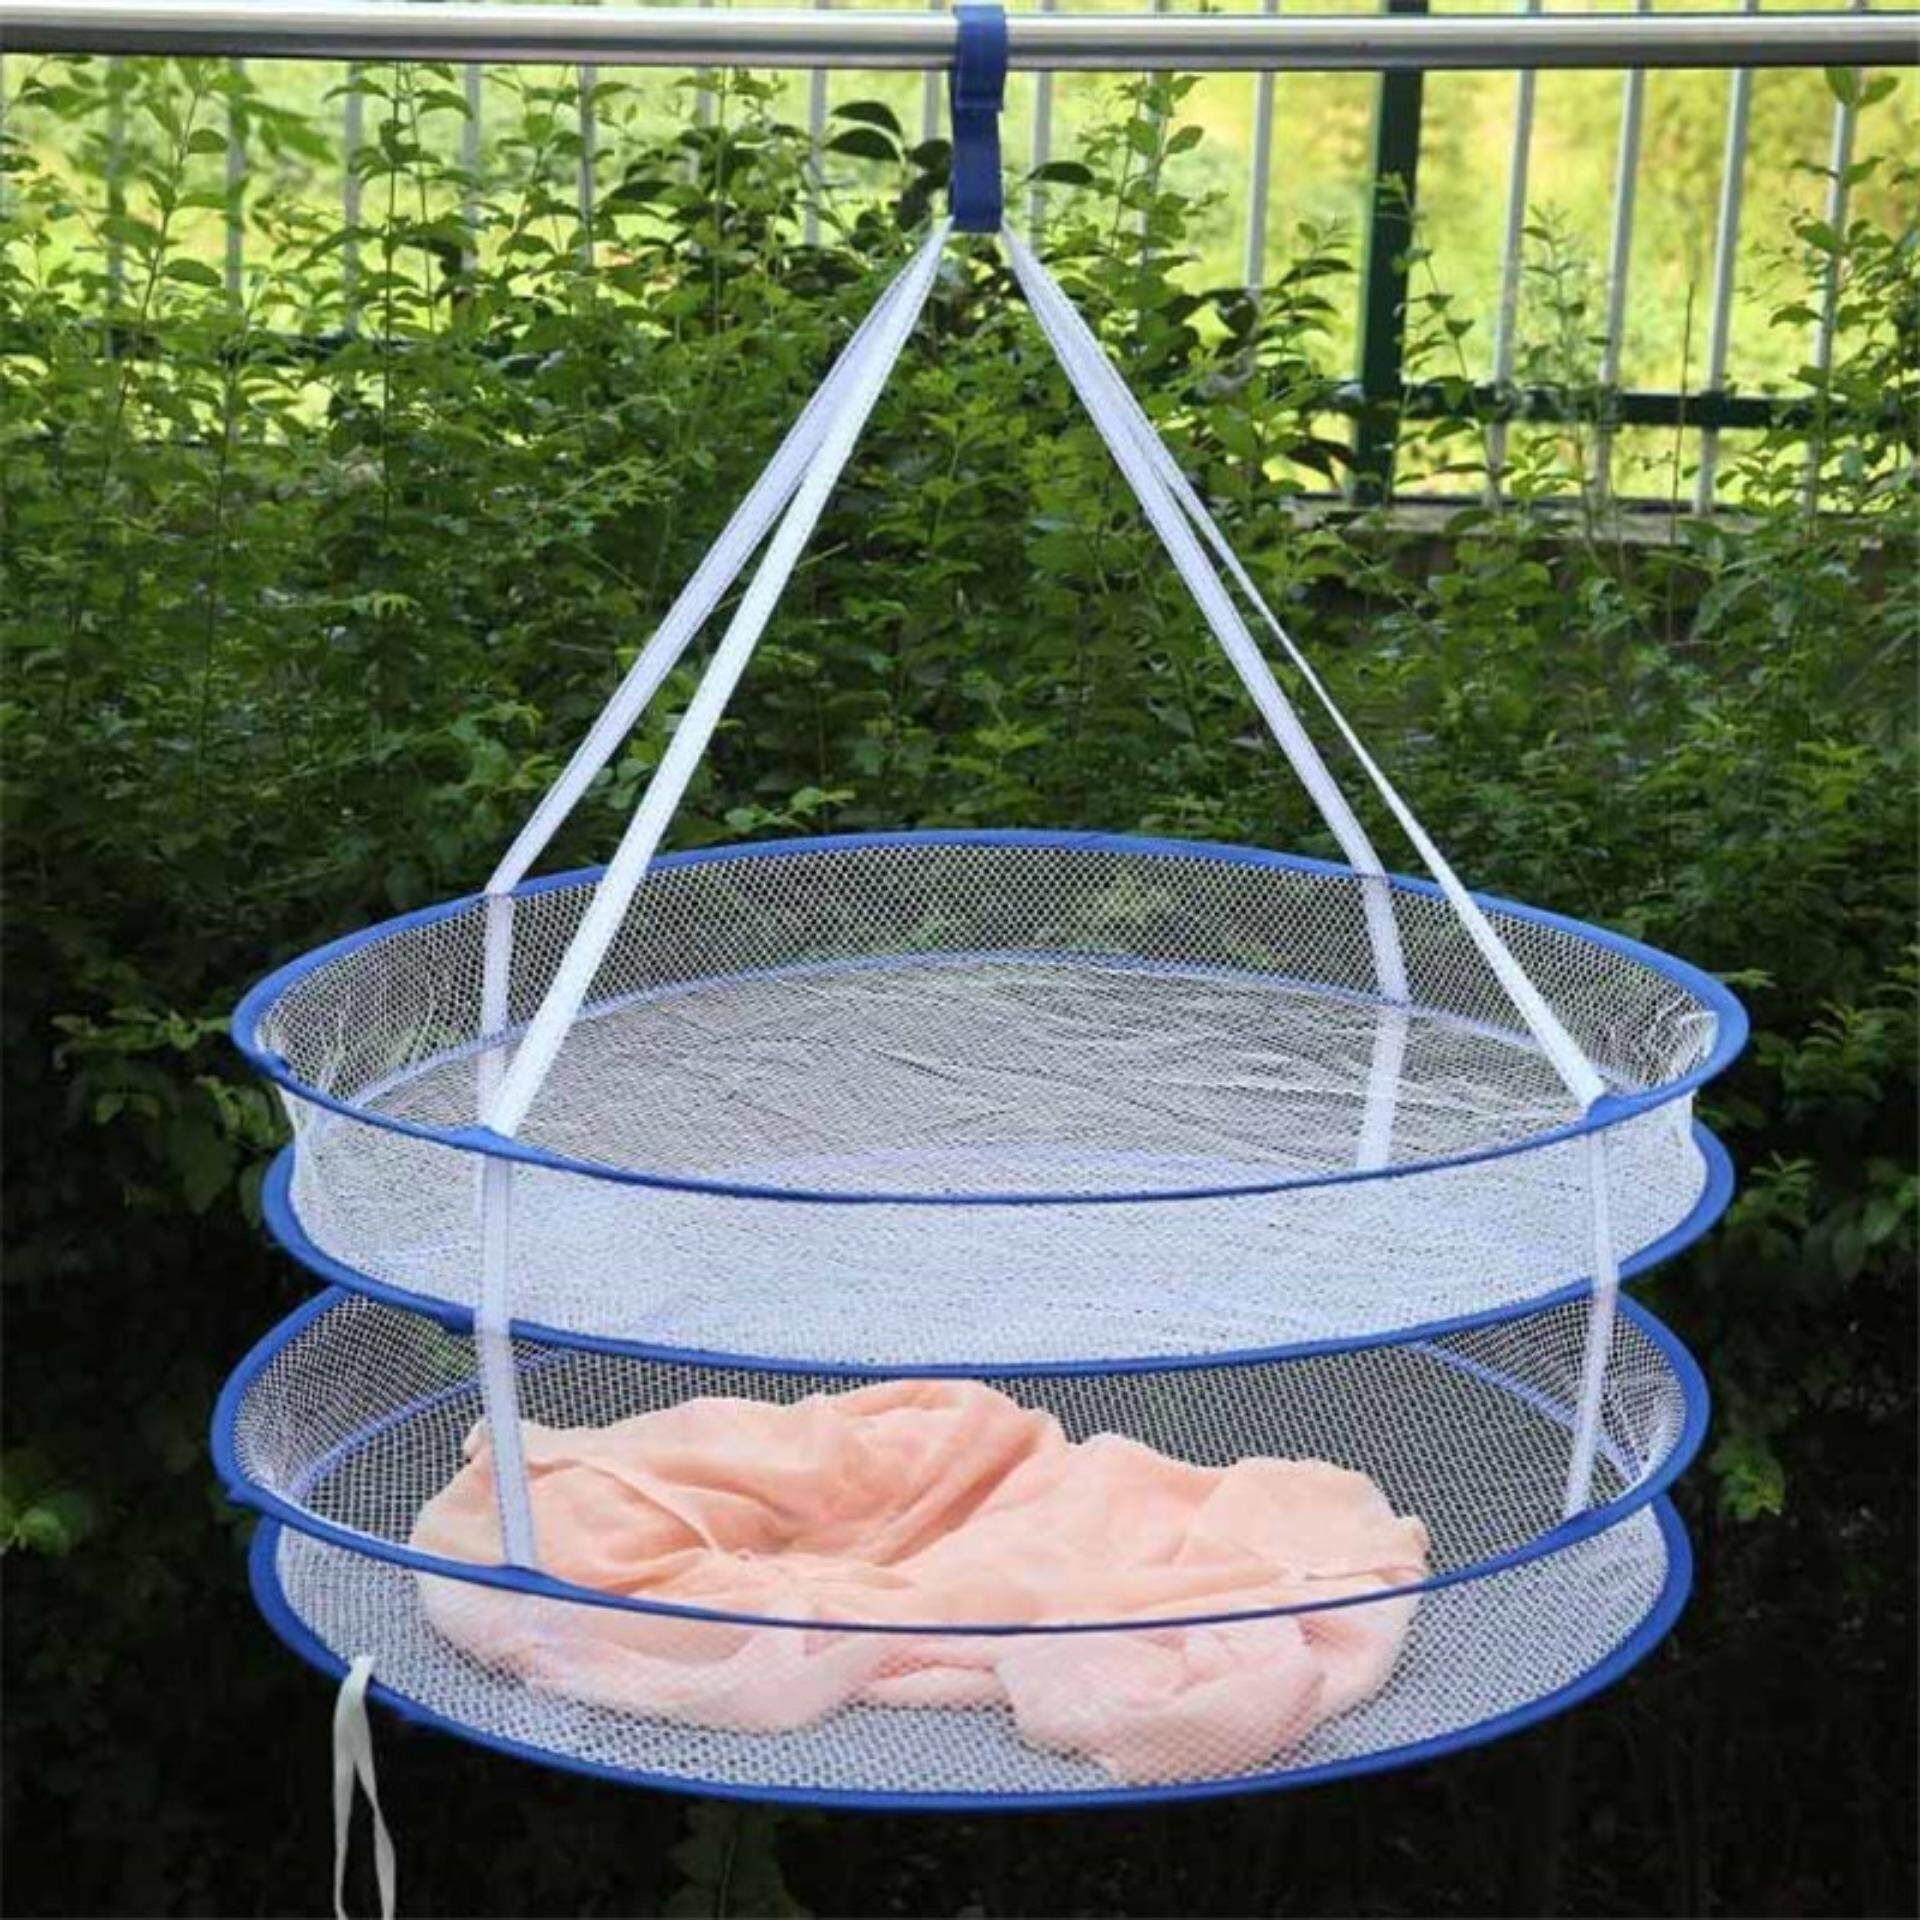 Vegoo Foldable 2layers Drying Rack Net Hanging Clothes Laundry Sweater Dryer Basket By Vegoo.